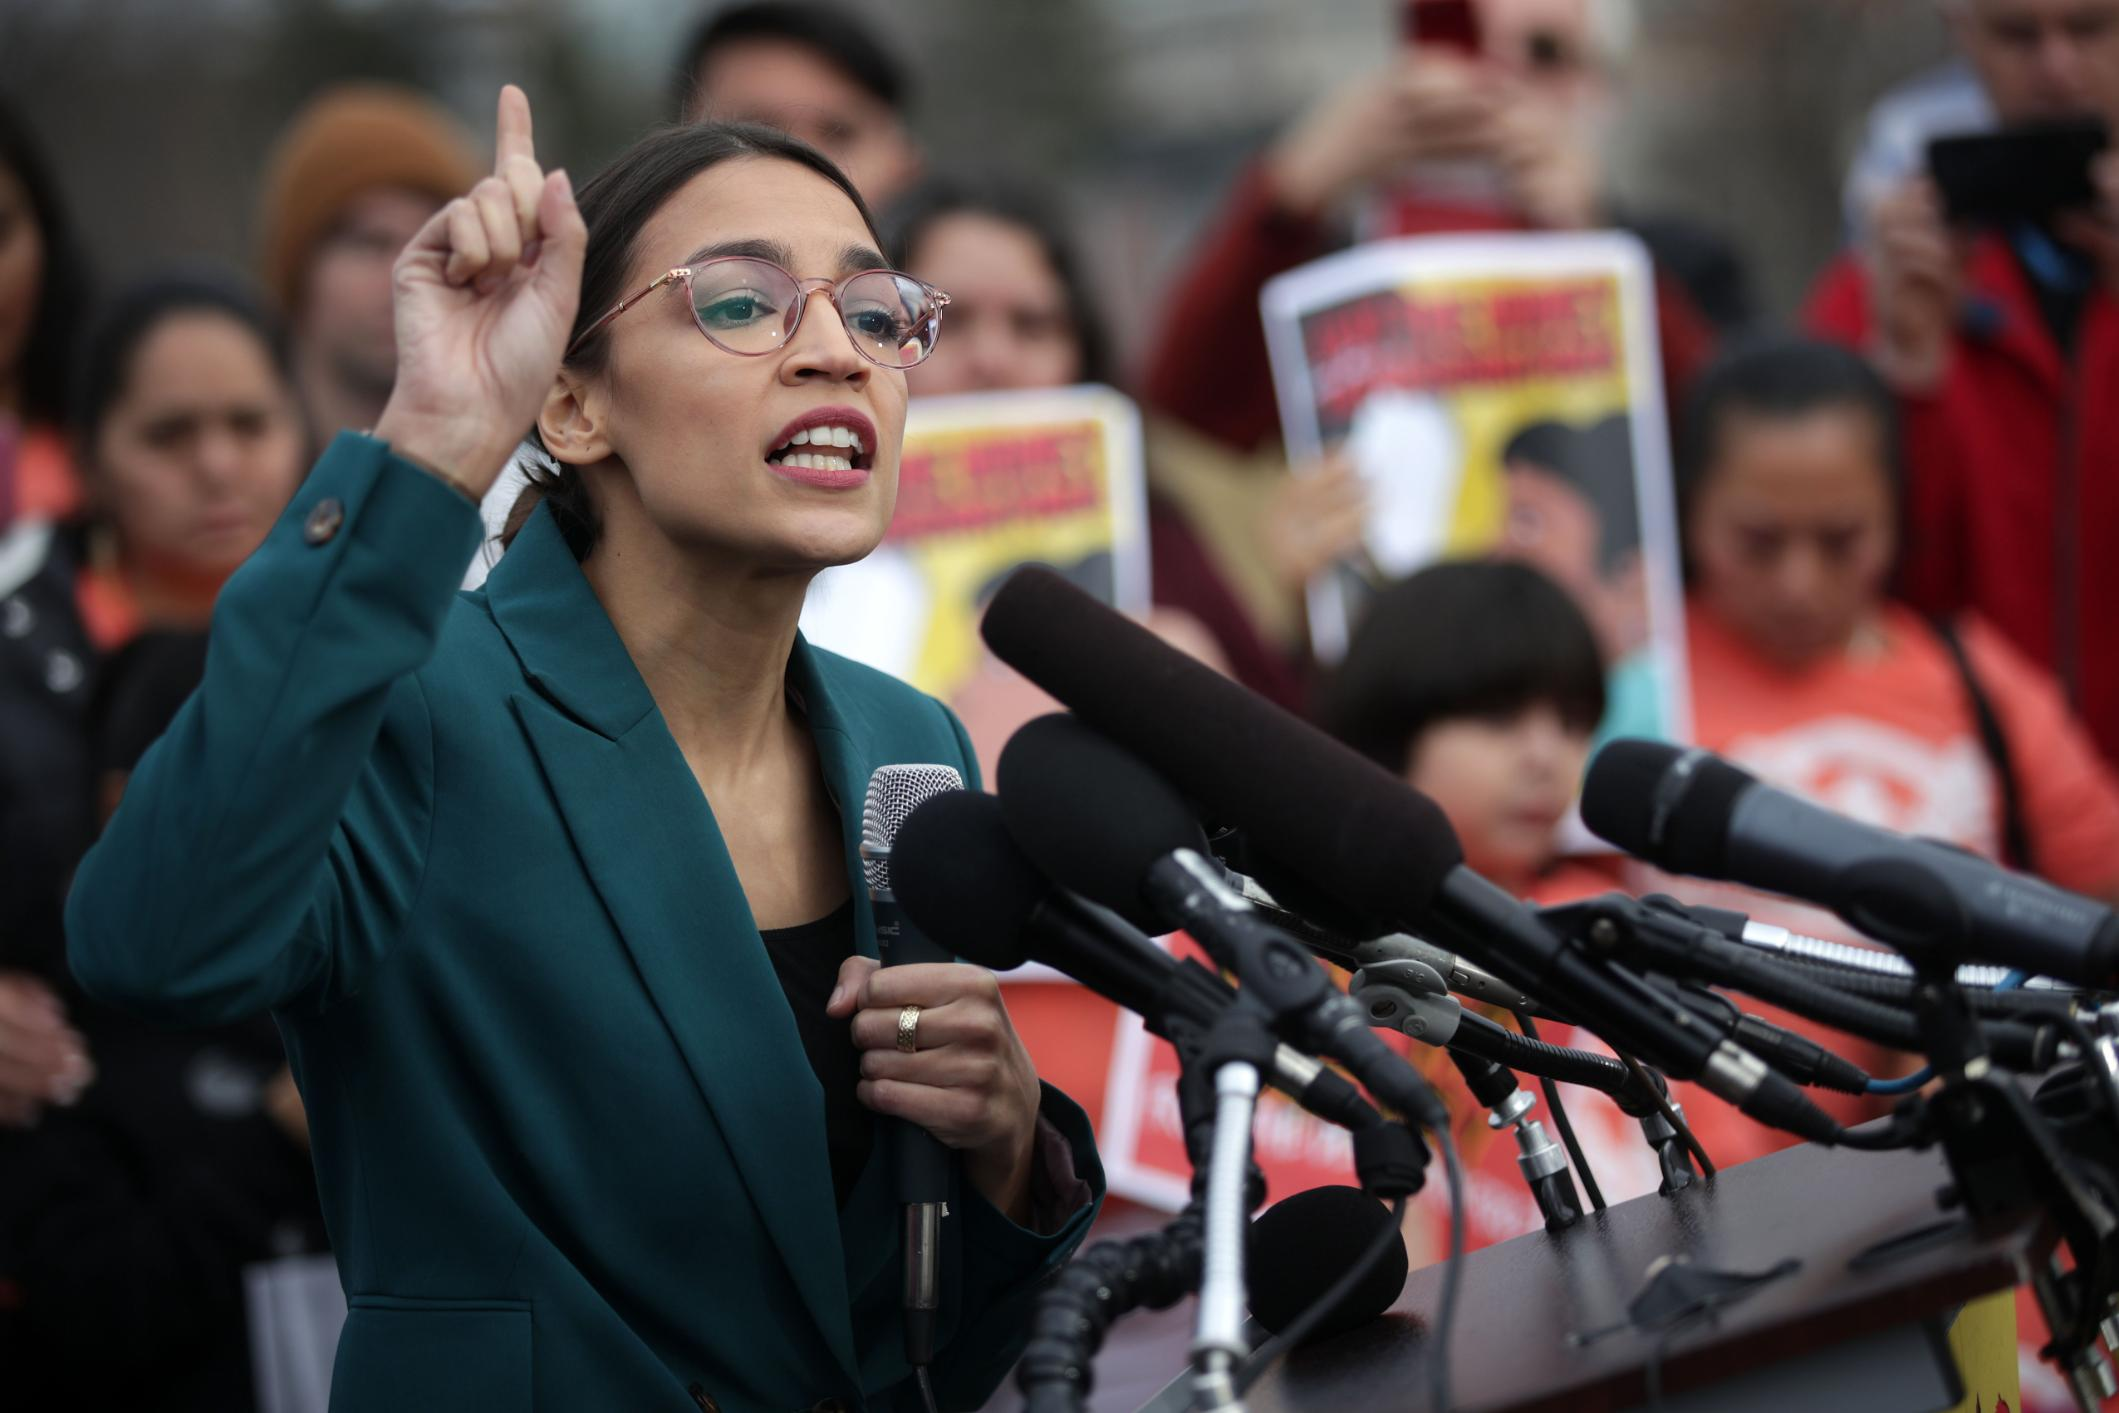 Alexandria Ocasio-Cortez looks to the future after a year of making waves